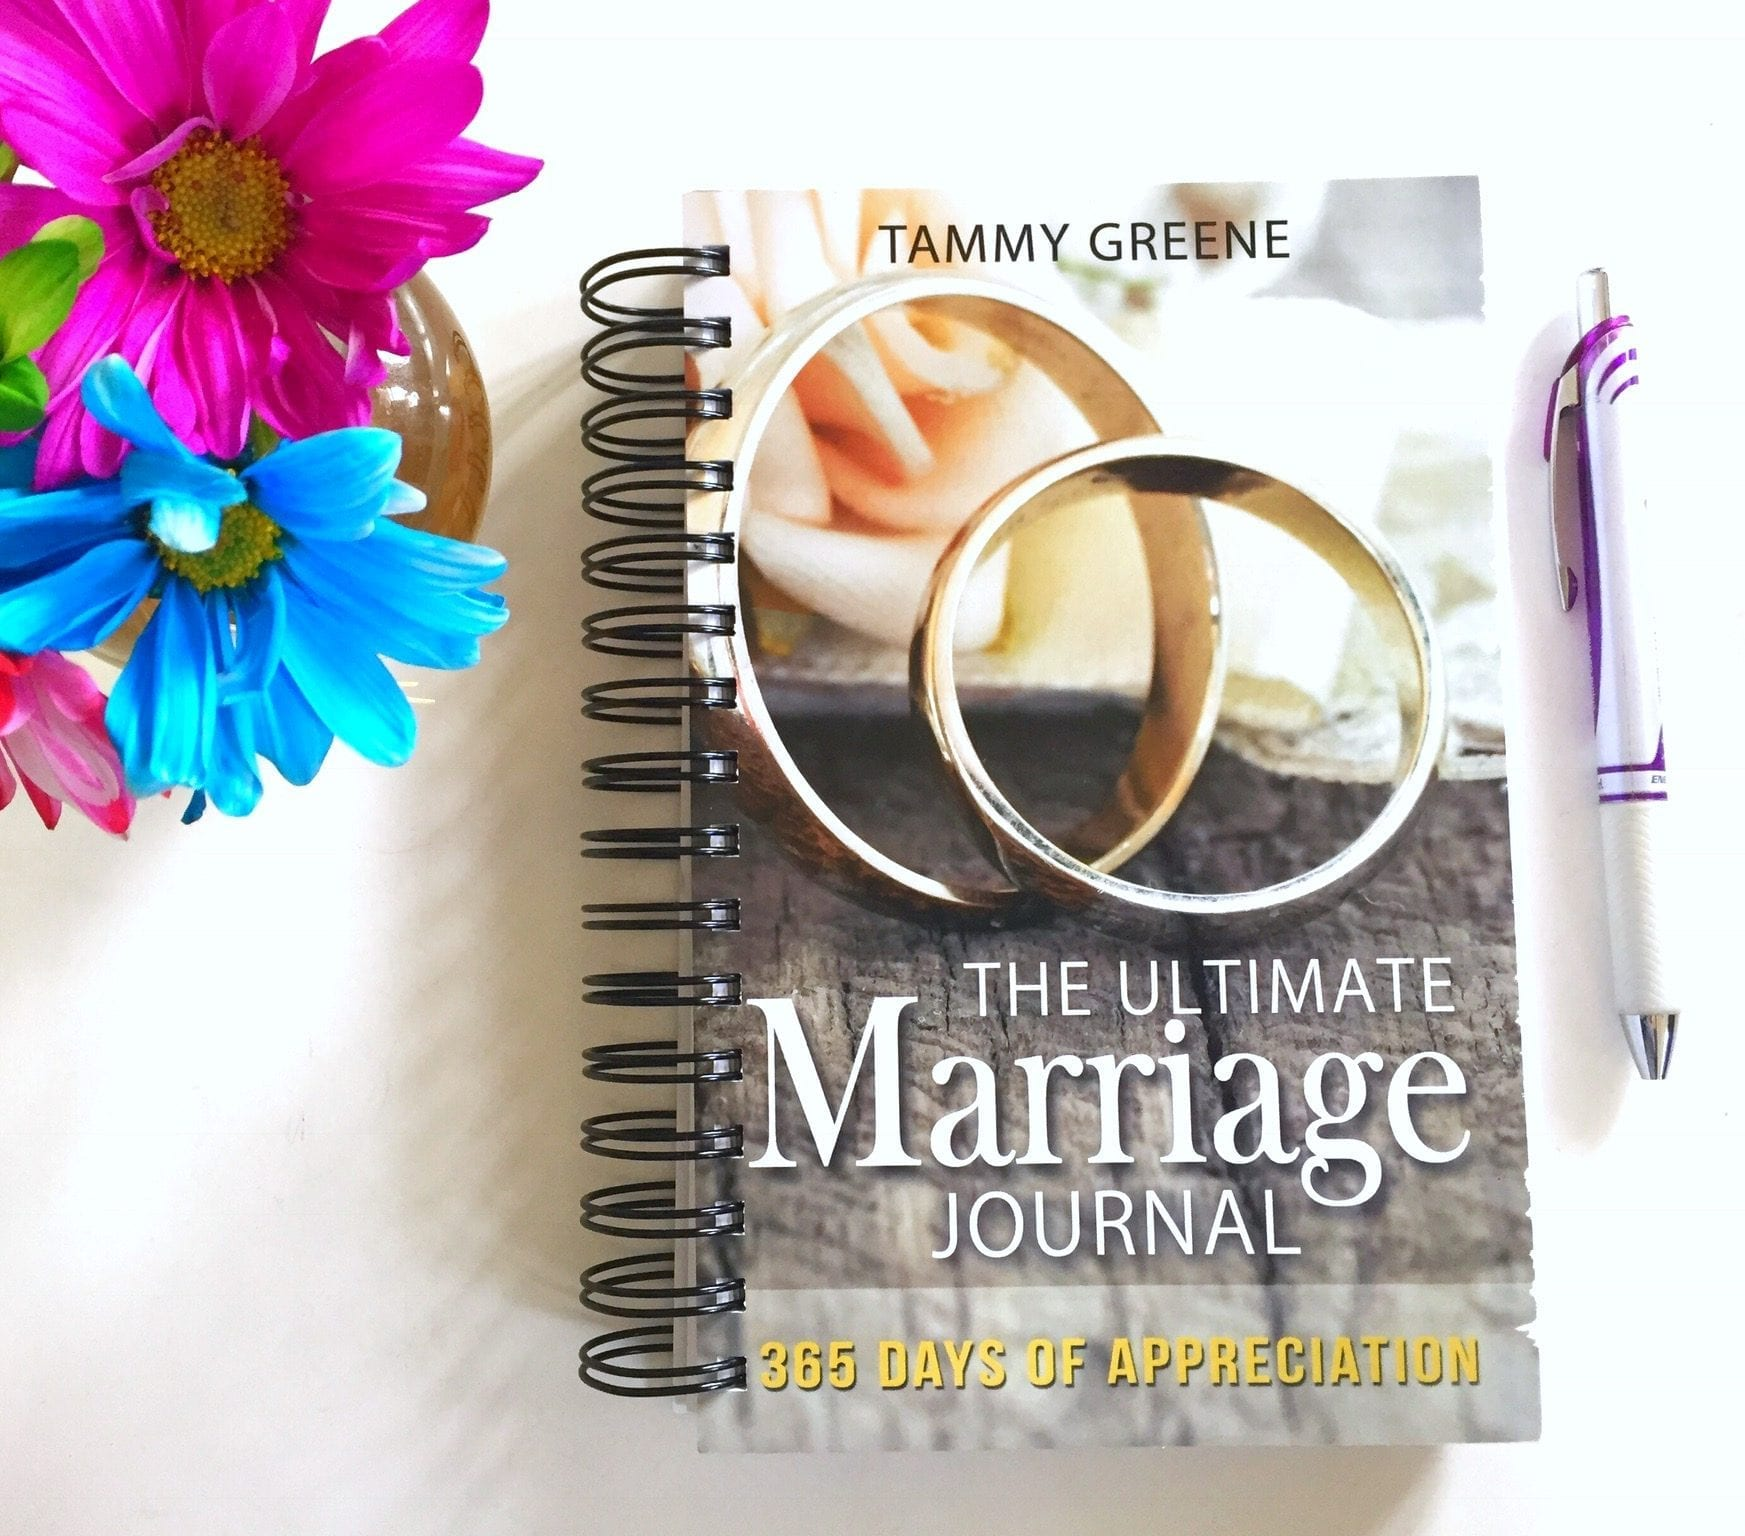 The ultimate marriage journal